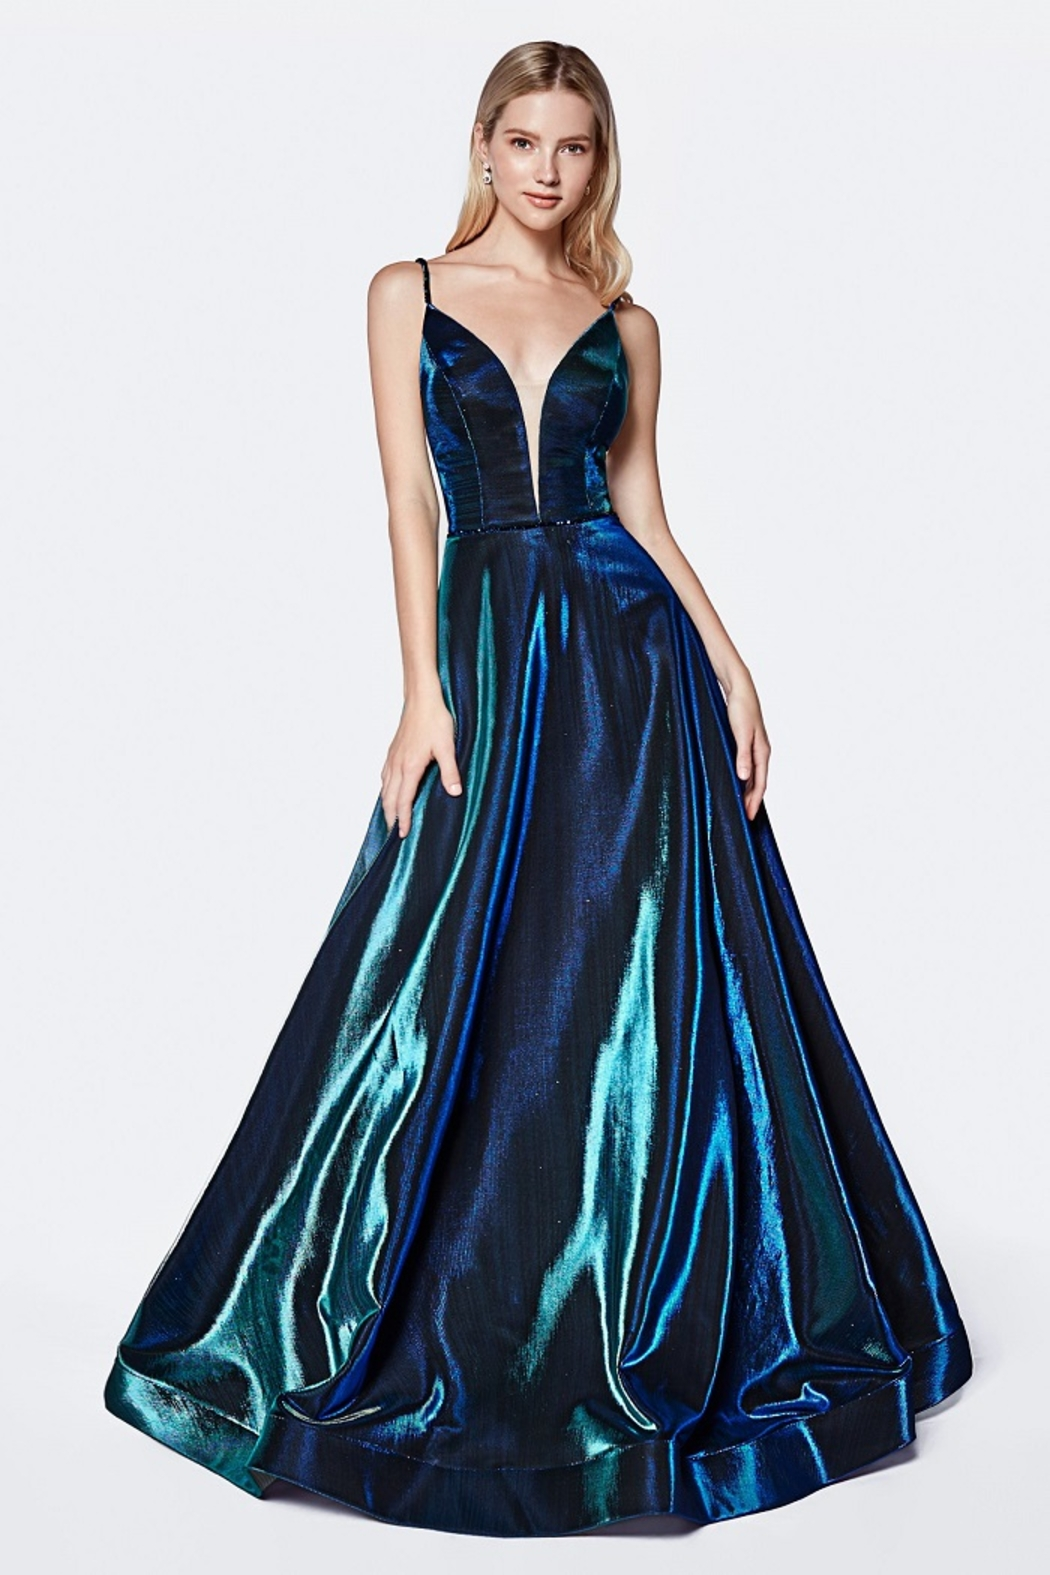 Cinderella Divine Teal Metallic Iridescent Long Formal Dress - Main Image